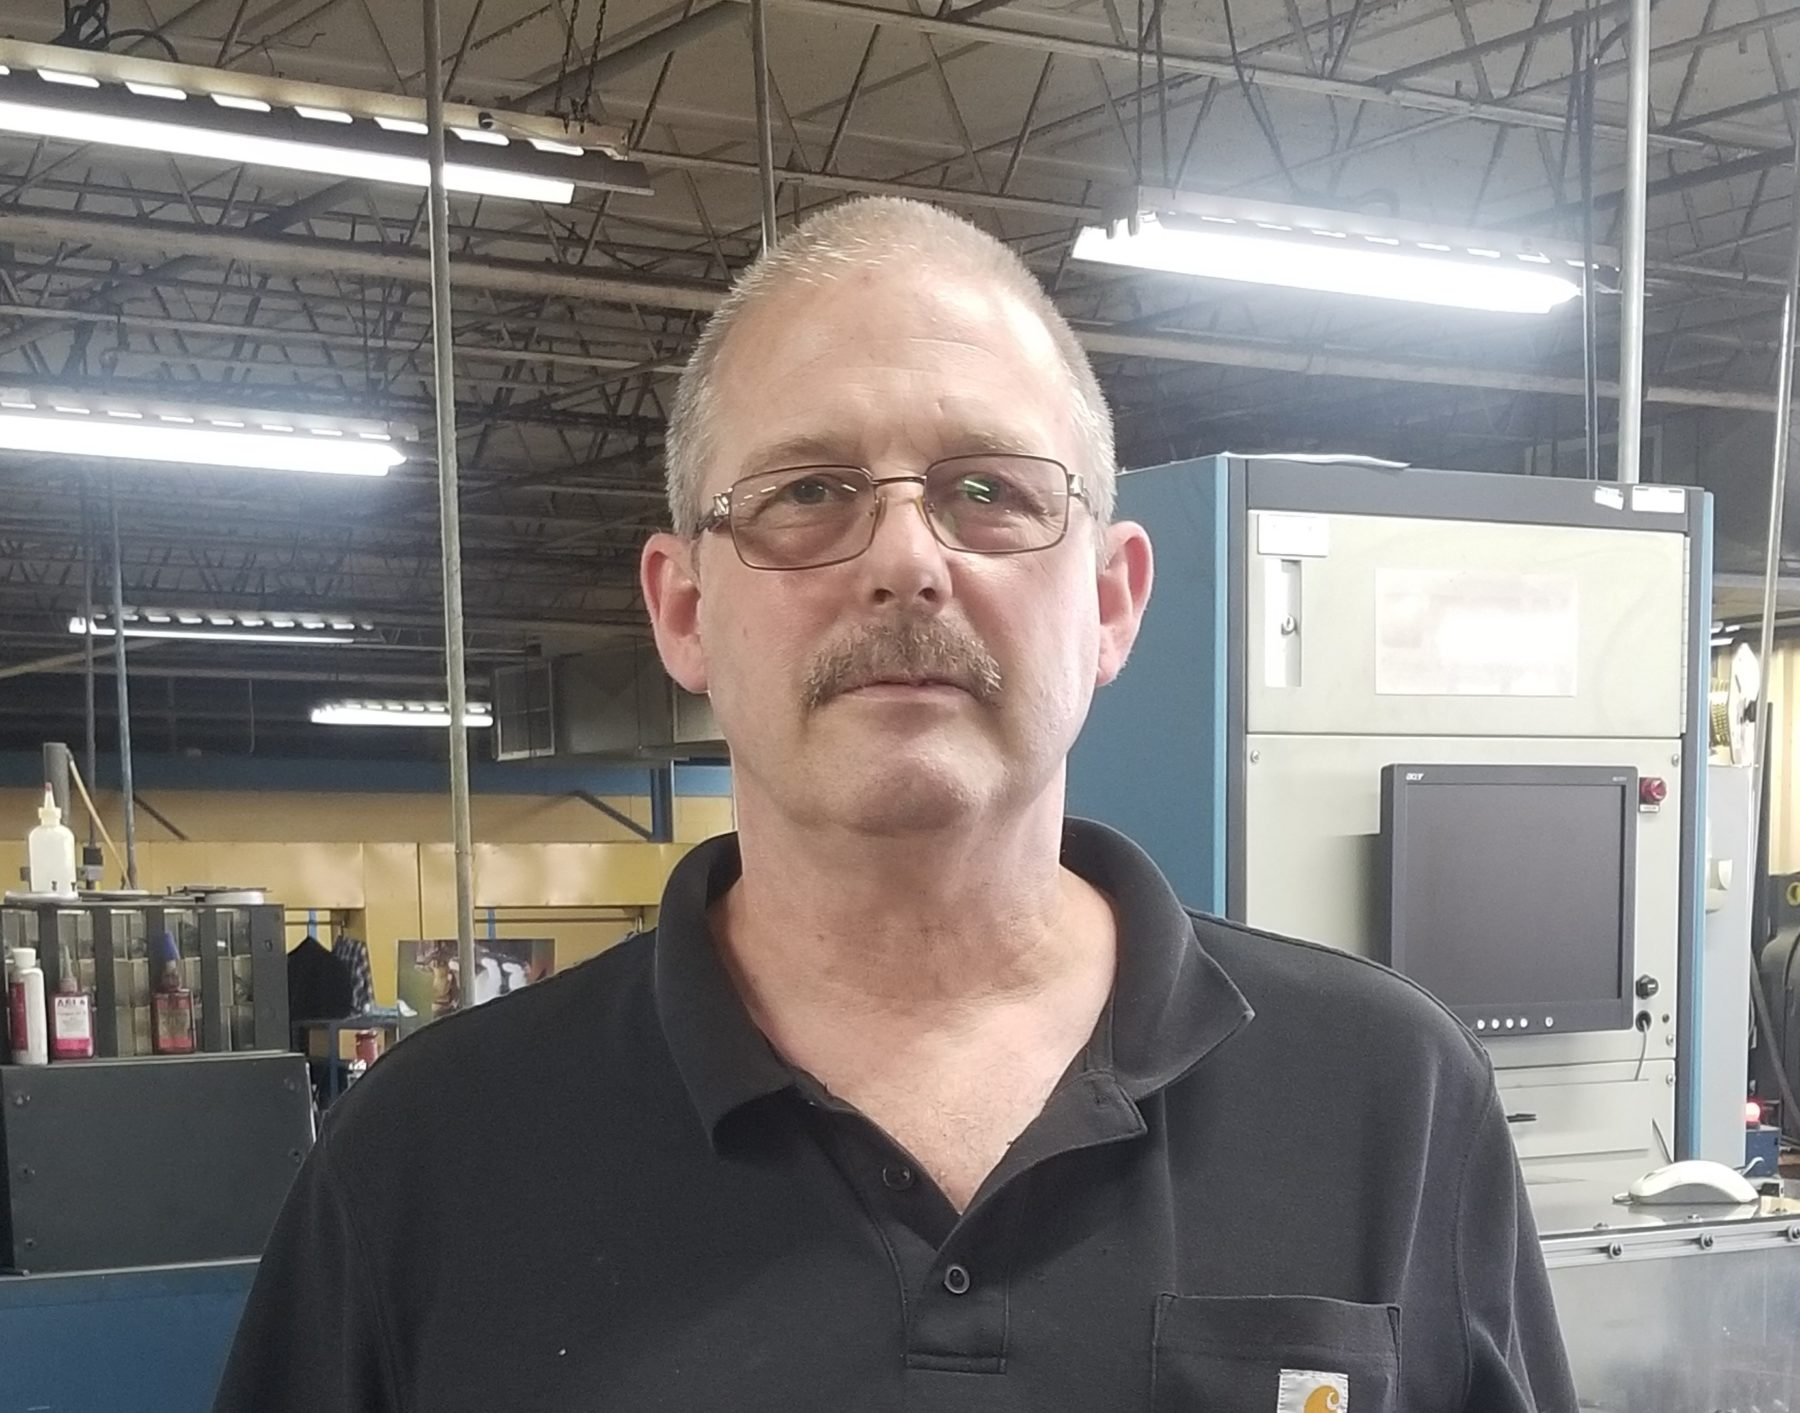 Motor Specialty Inc. Welcomes Dean Geary as Plant Manager